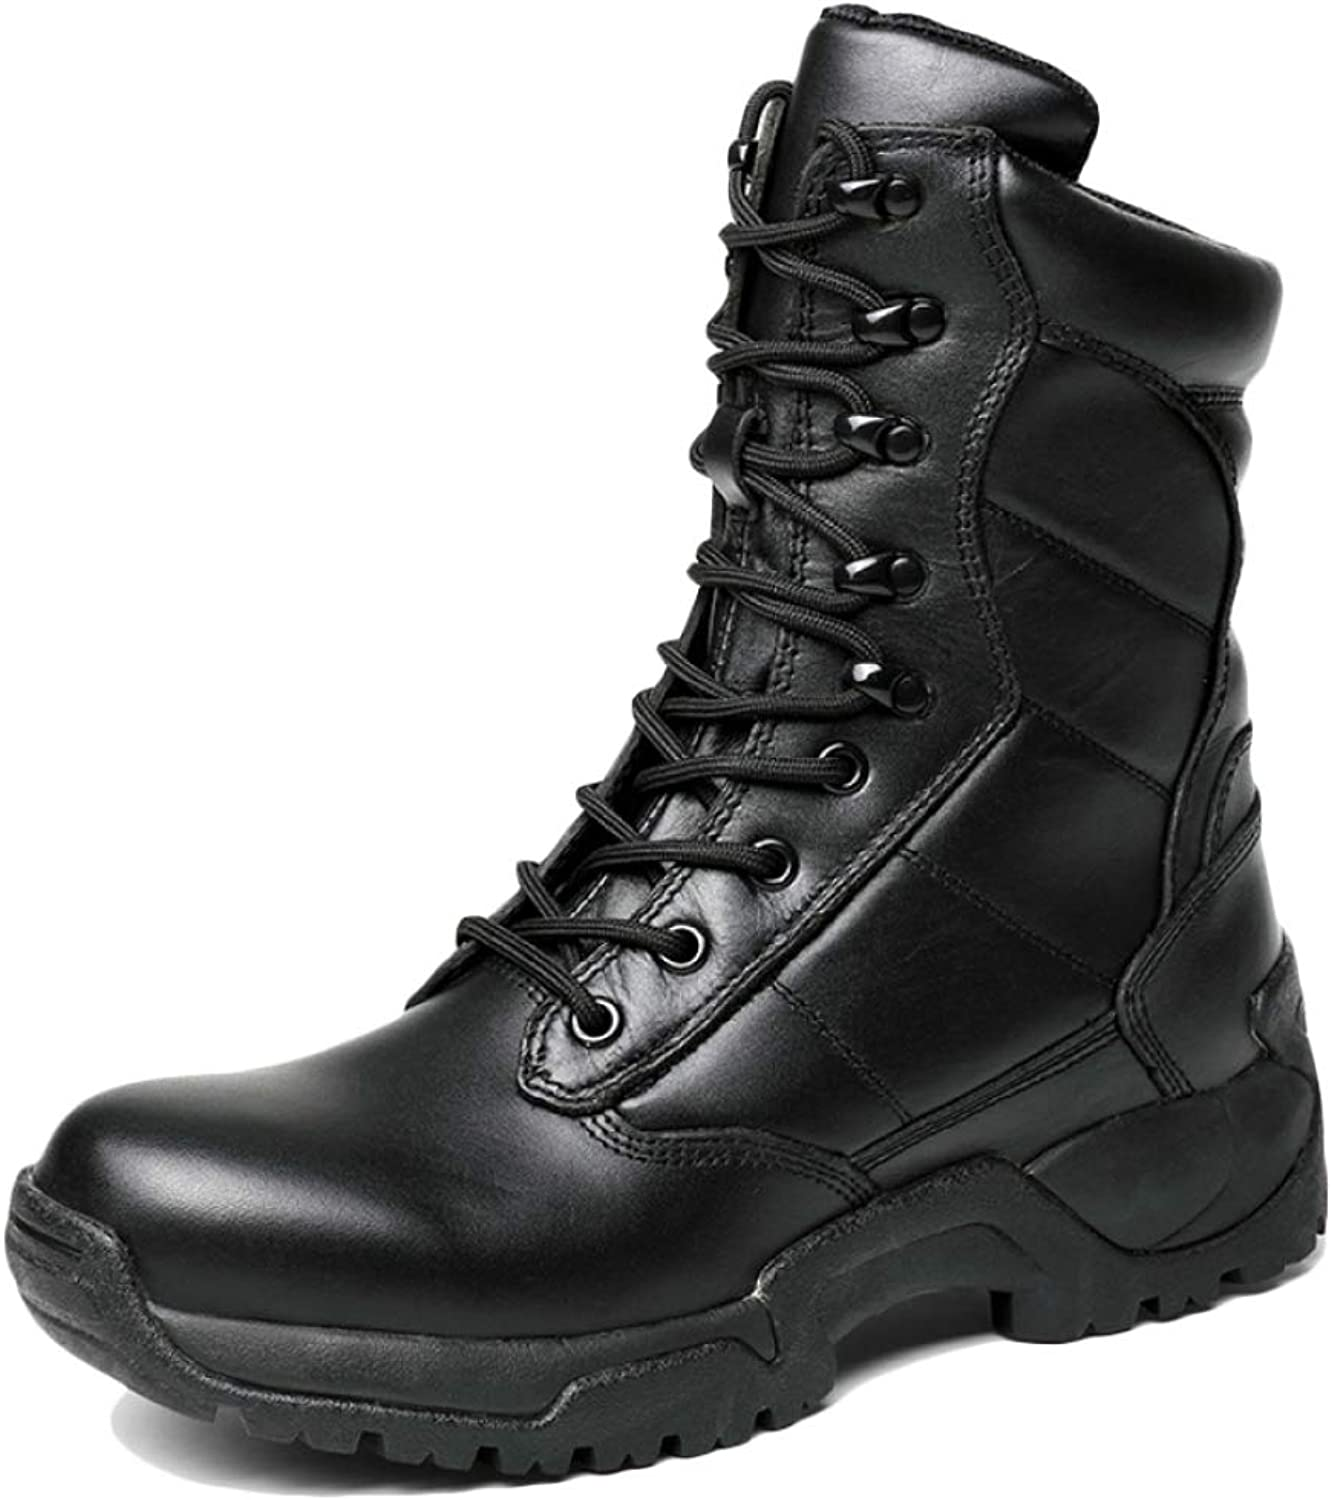 Men's High Top Snow Boots Casual Leather Comfy Waterproof shoes Warm Fur Lined Non Slip Hiking Waterproof Footwear Size:38-44